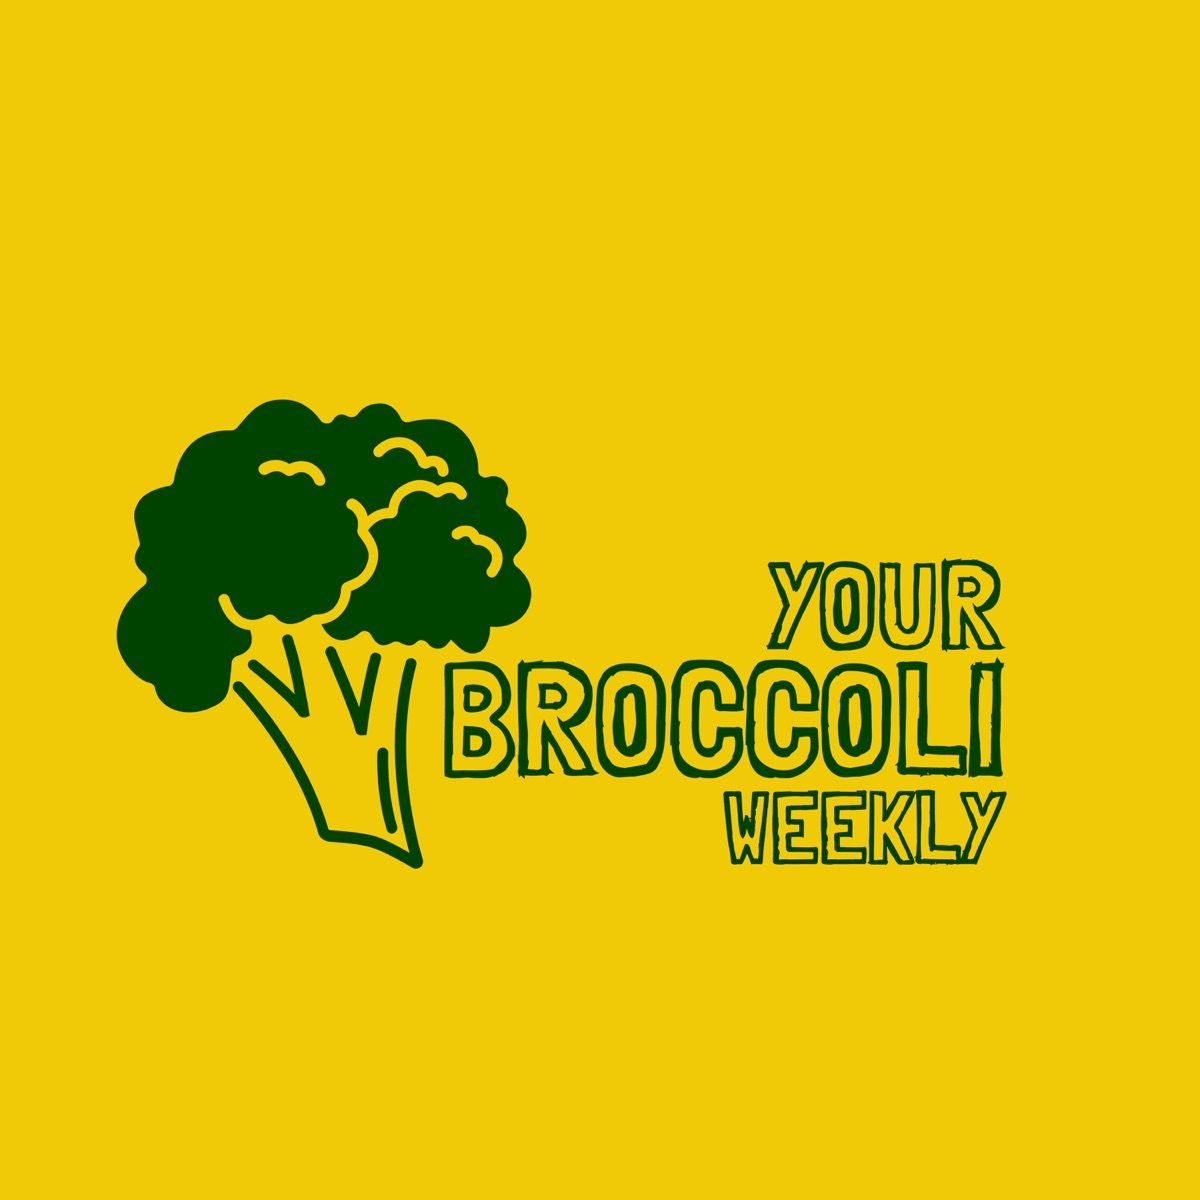 Your Broccoli Weekly - The impact of COVID19 on the UK economy